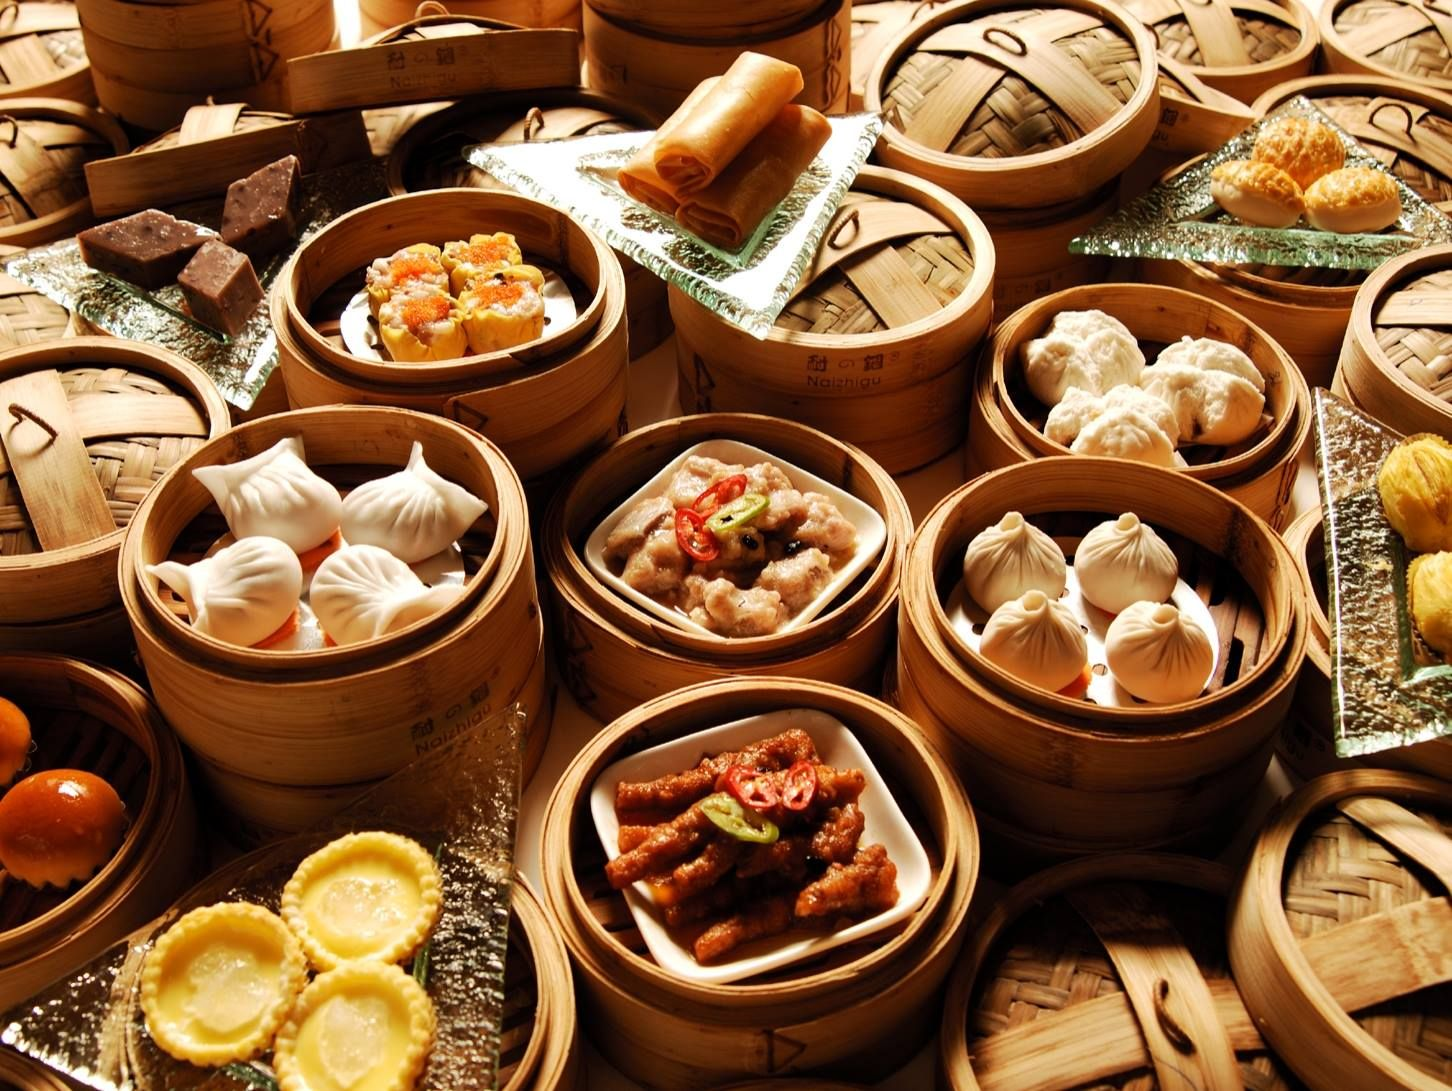 Canton Morning Tea 广州早茶 Provides Cantonese An Opportunity To Enjoy Relaxing Lifestyle Drinking Chinese Tea As Well As Eating Real Chinese Food Food Dim Sum